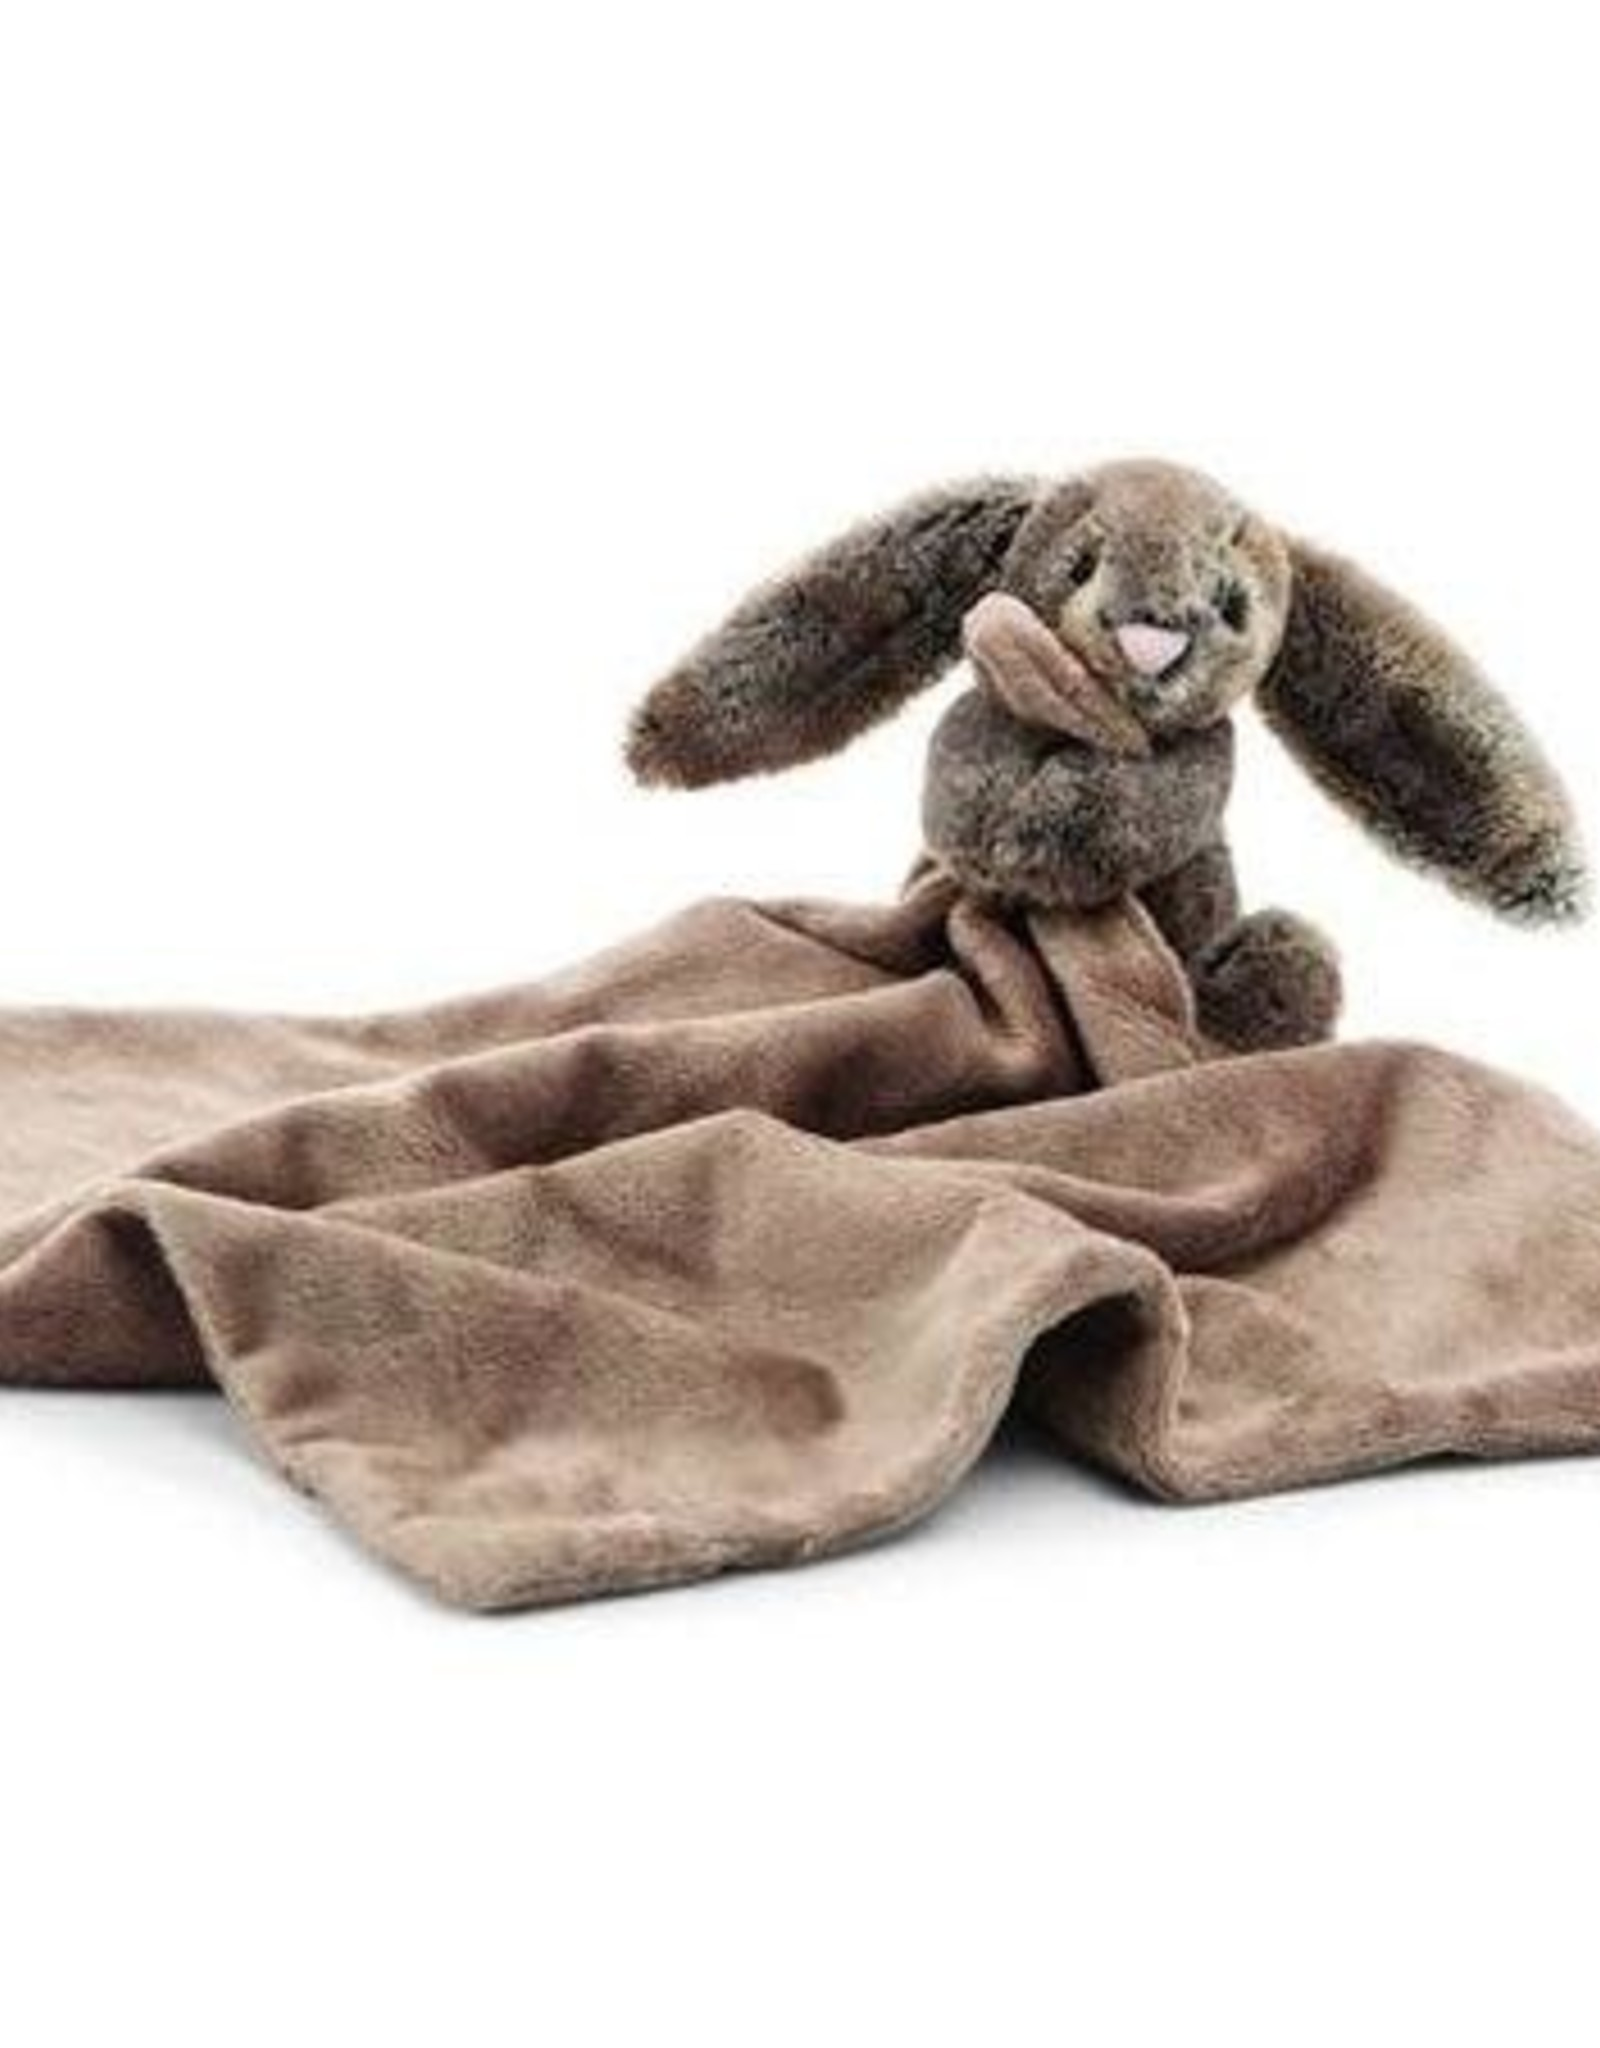 Jellycat Soother Woodland Bunny